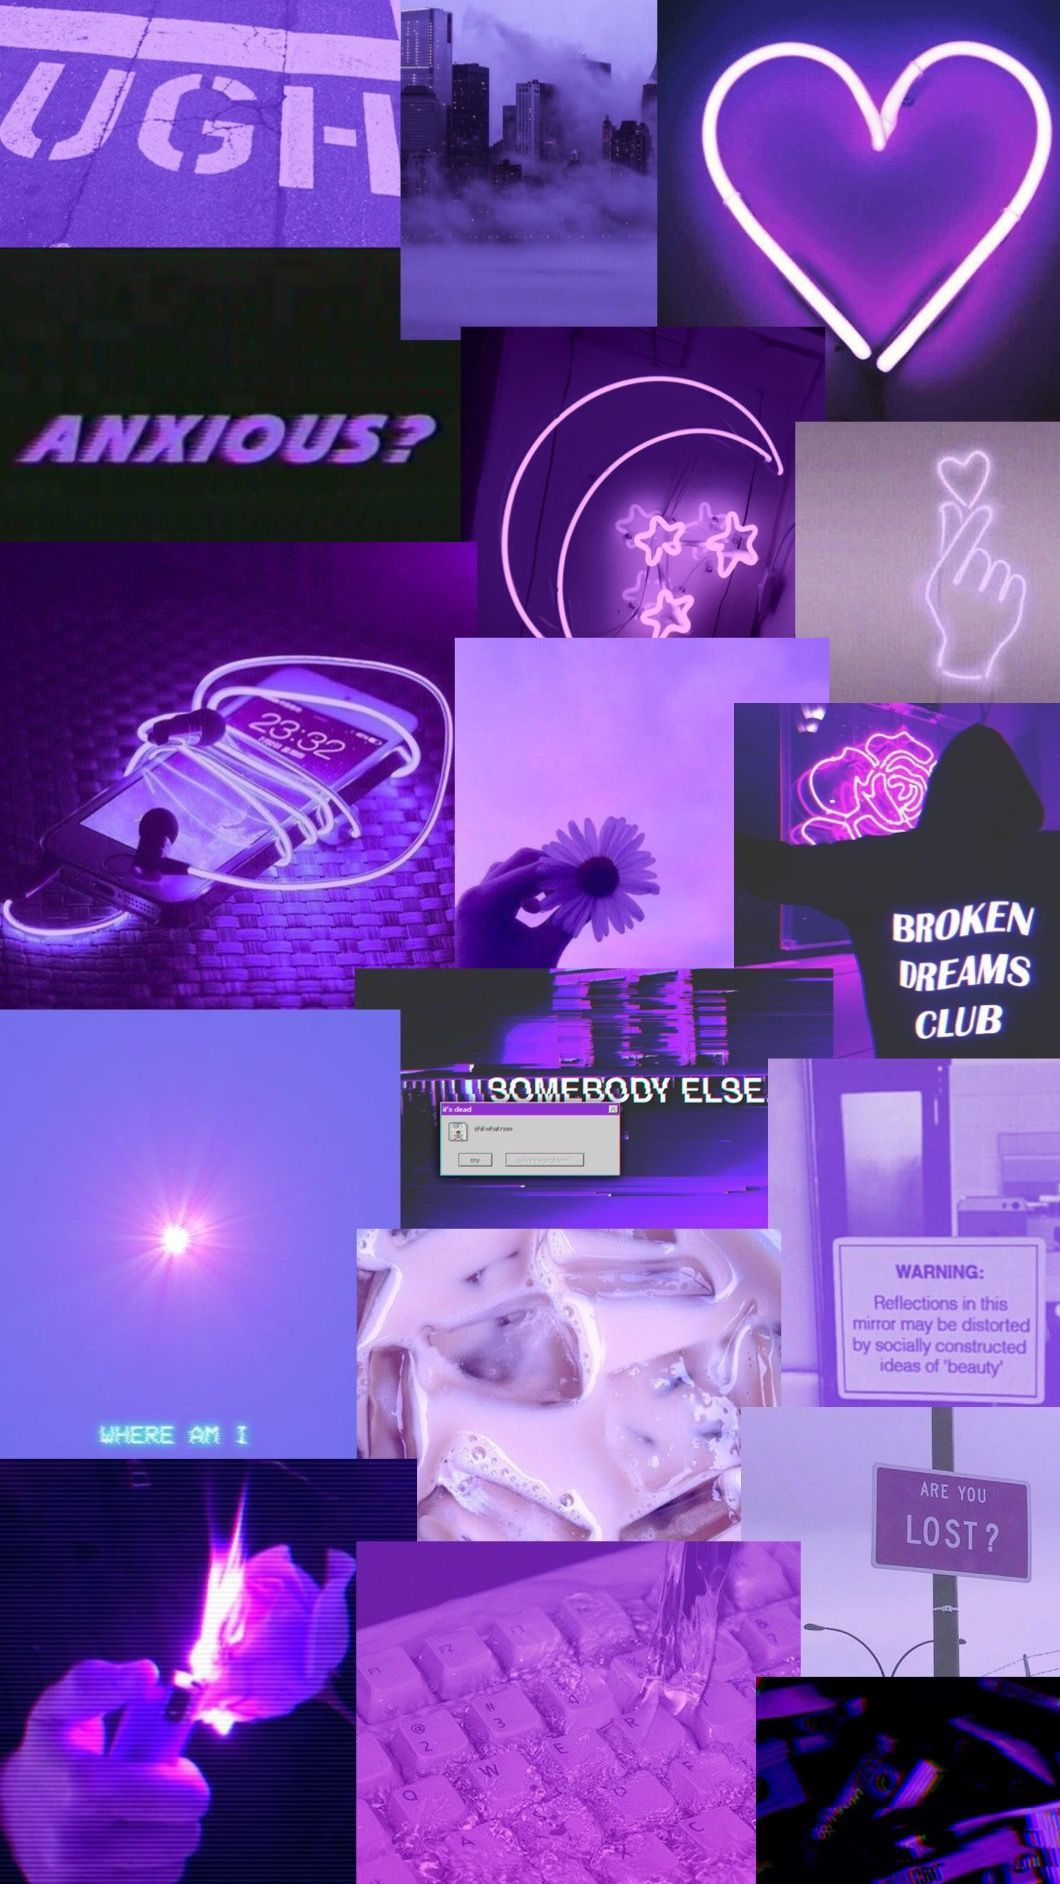 Retro anime aesthetic wallpapers posted by zoey sellers. Pin by caroline on purple aesthetics | Purple wallpaper ...